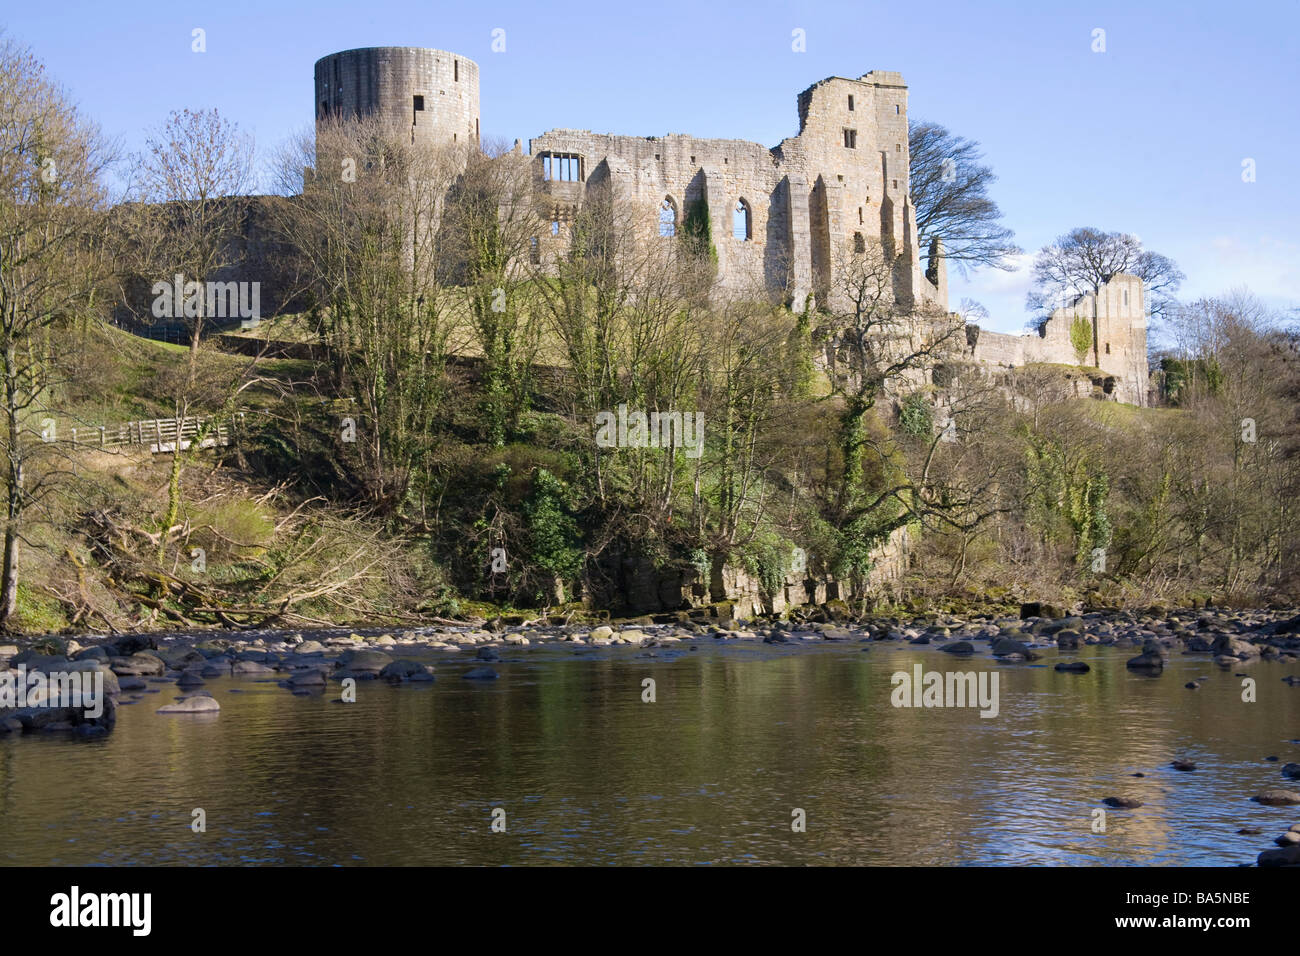 Barnard Castle County Durham England UK March View across River Tees to the ruins of the Norman Castle perched on - Stock Image